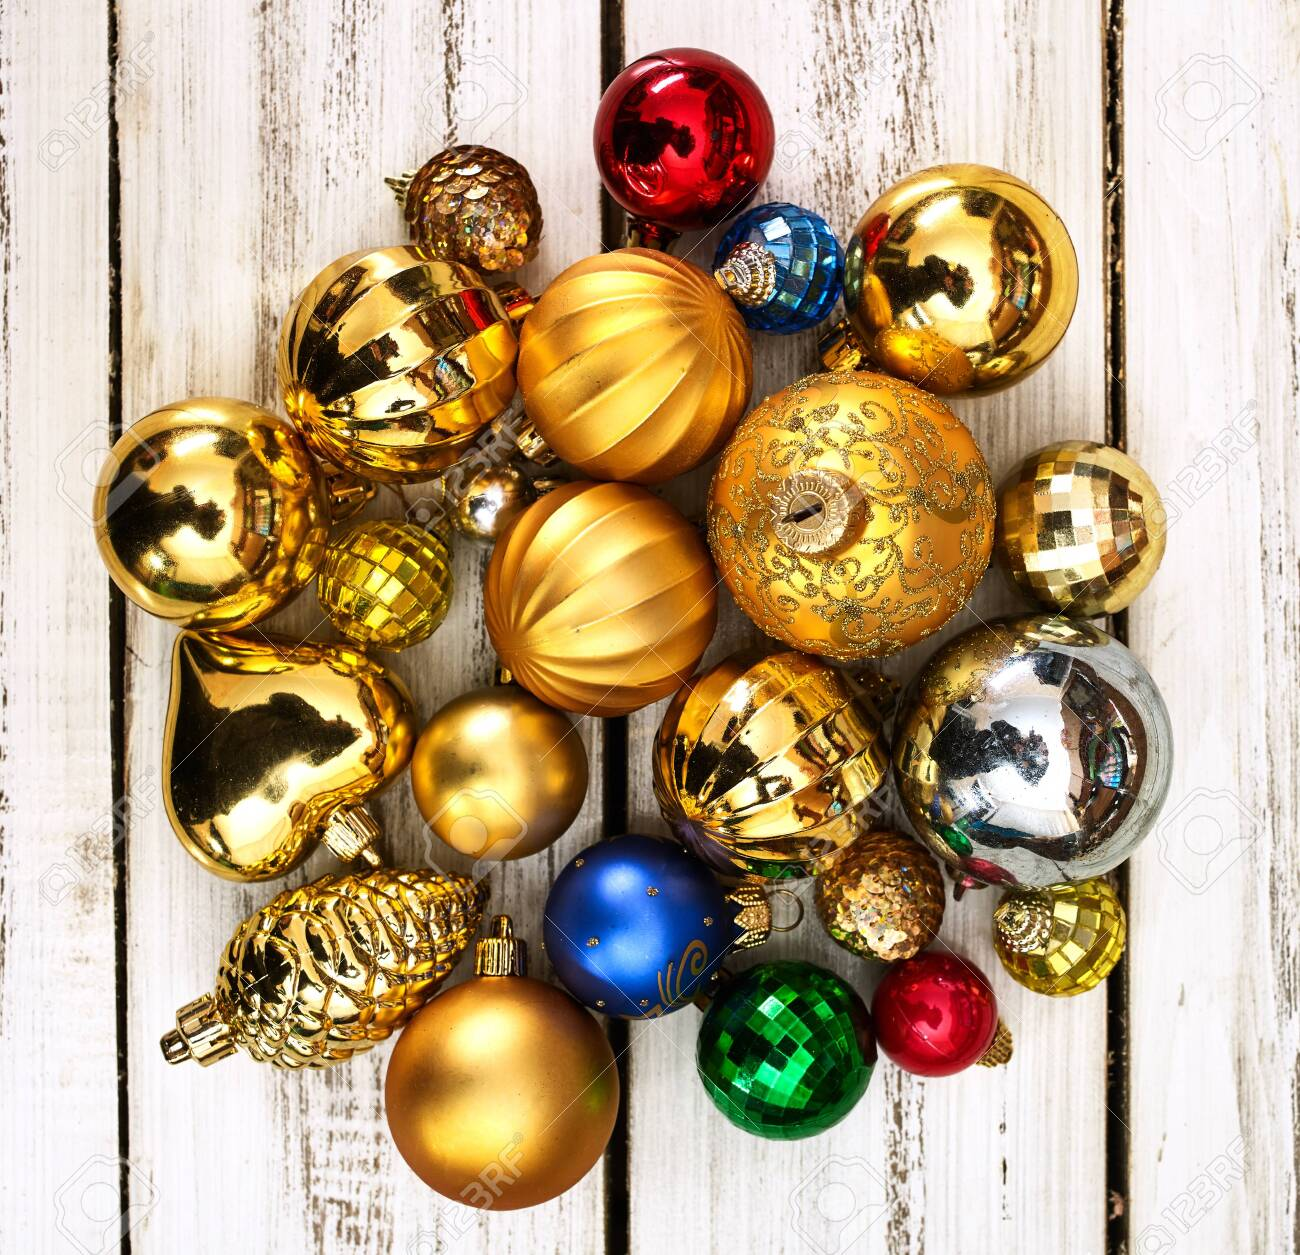 Christmas wreath of Xmas balls decorations hangs on front door who made from white wooden boards on square frame. - 133939728